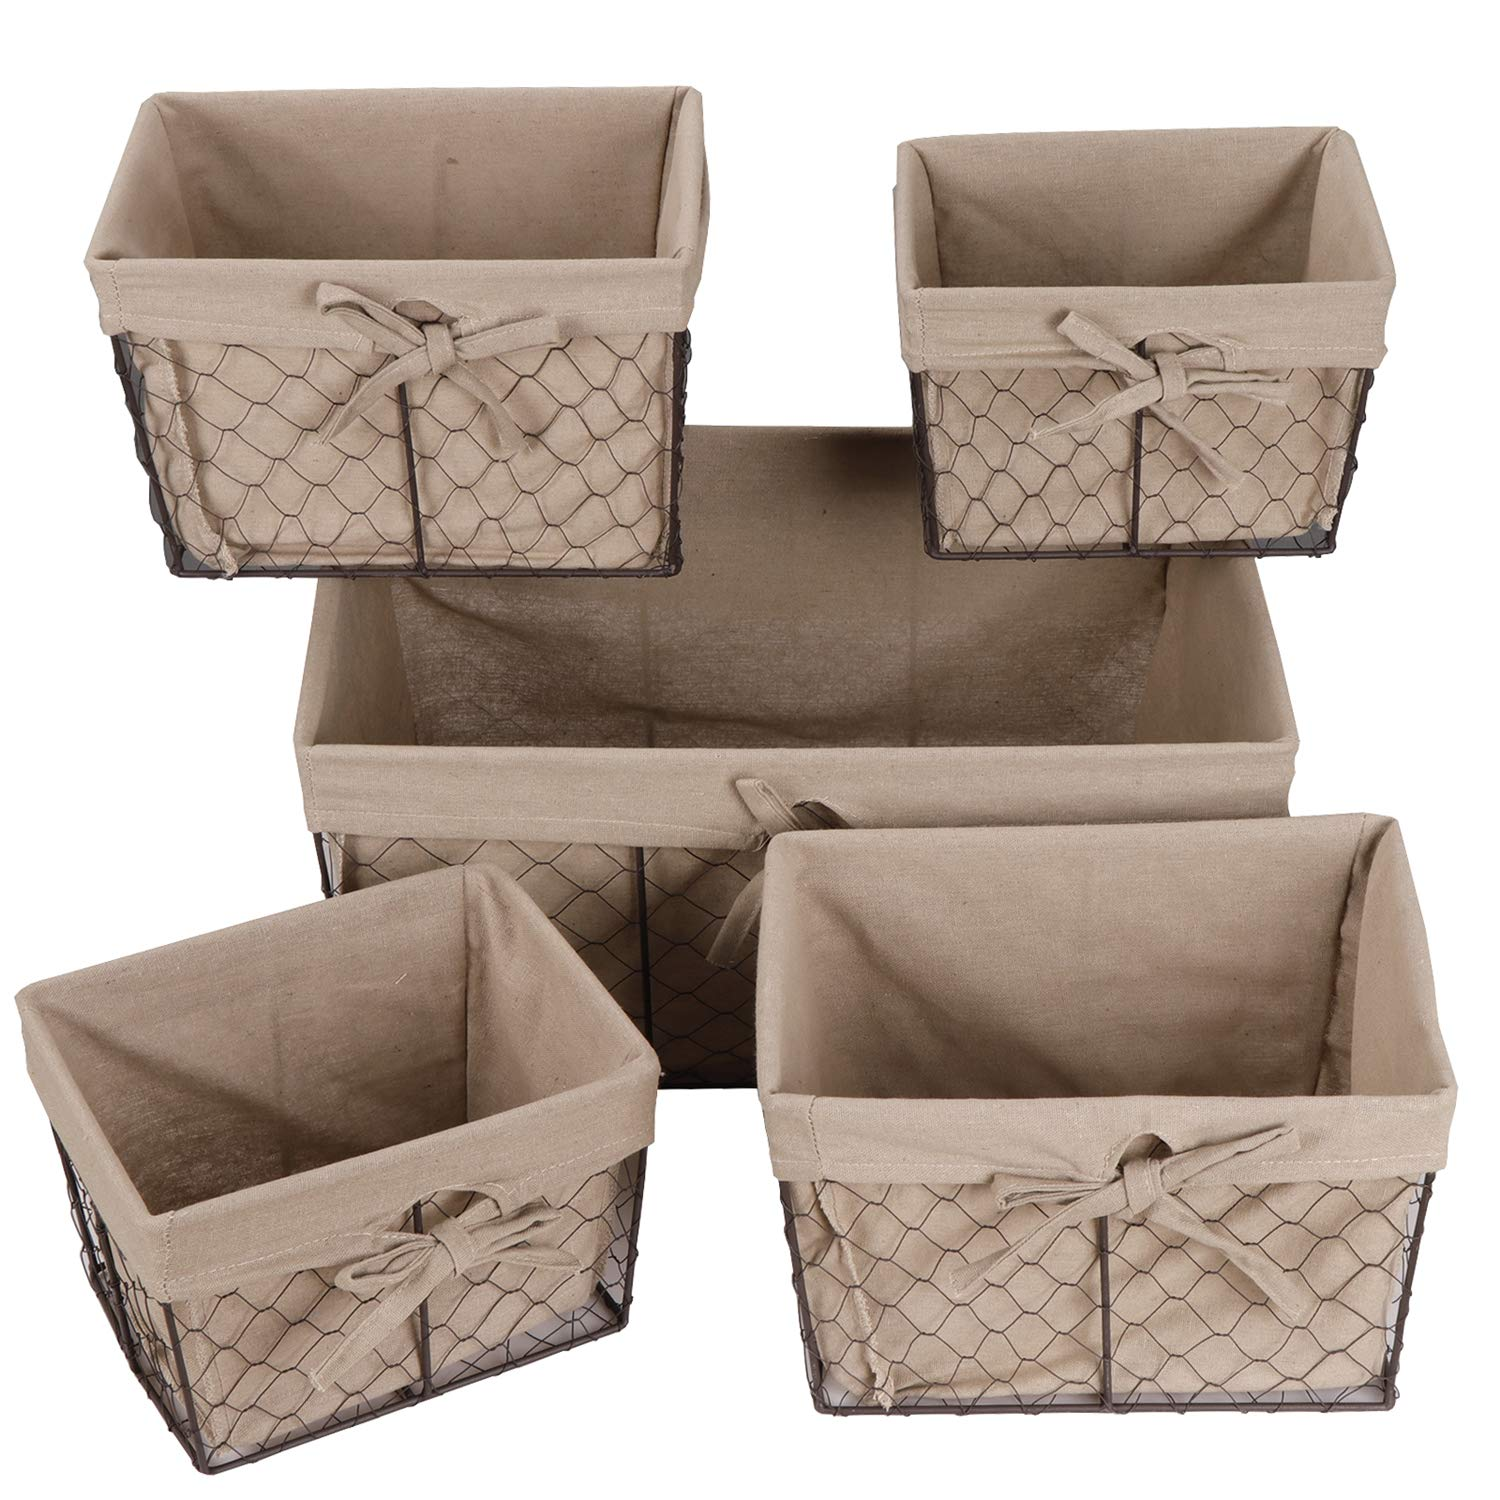 F2C Home Decor Set of 5 Vintage Toy Fruit Clothes Metal Chicken Wire Storage Basket Organizer W/Removable Fabric Liner for Bathroom Kitchen Office Nursery Laundry Bedroom Shelf by F2C (Image #7)